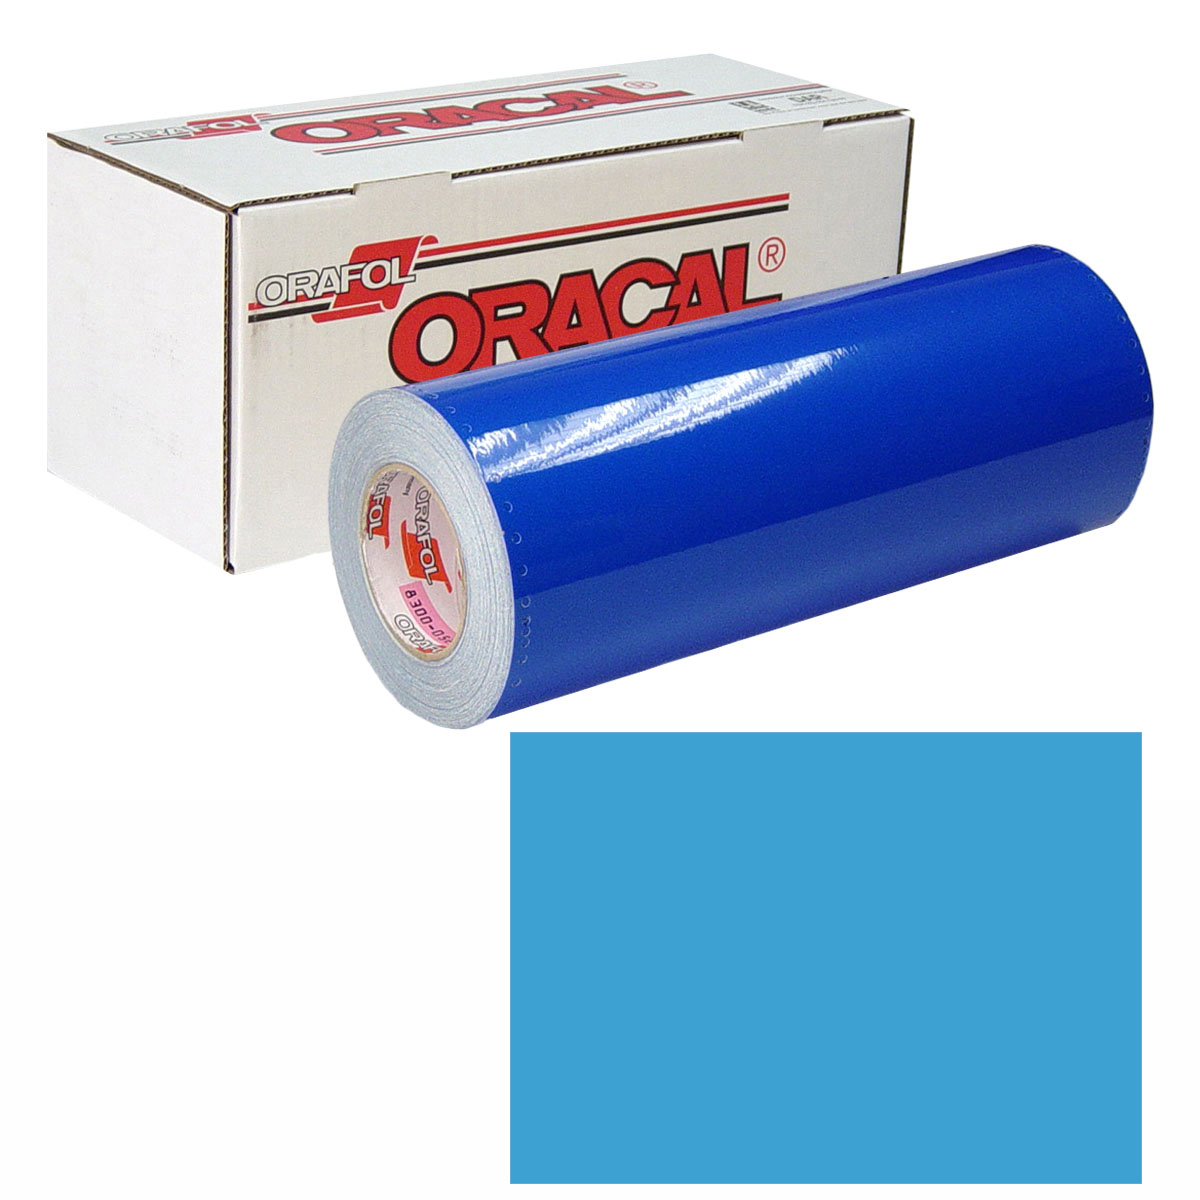 ORACAL 631 Unp 48in X 50yd 056 Ice Blue